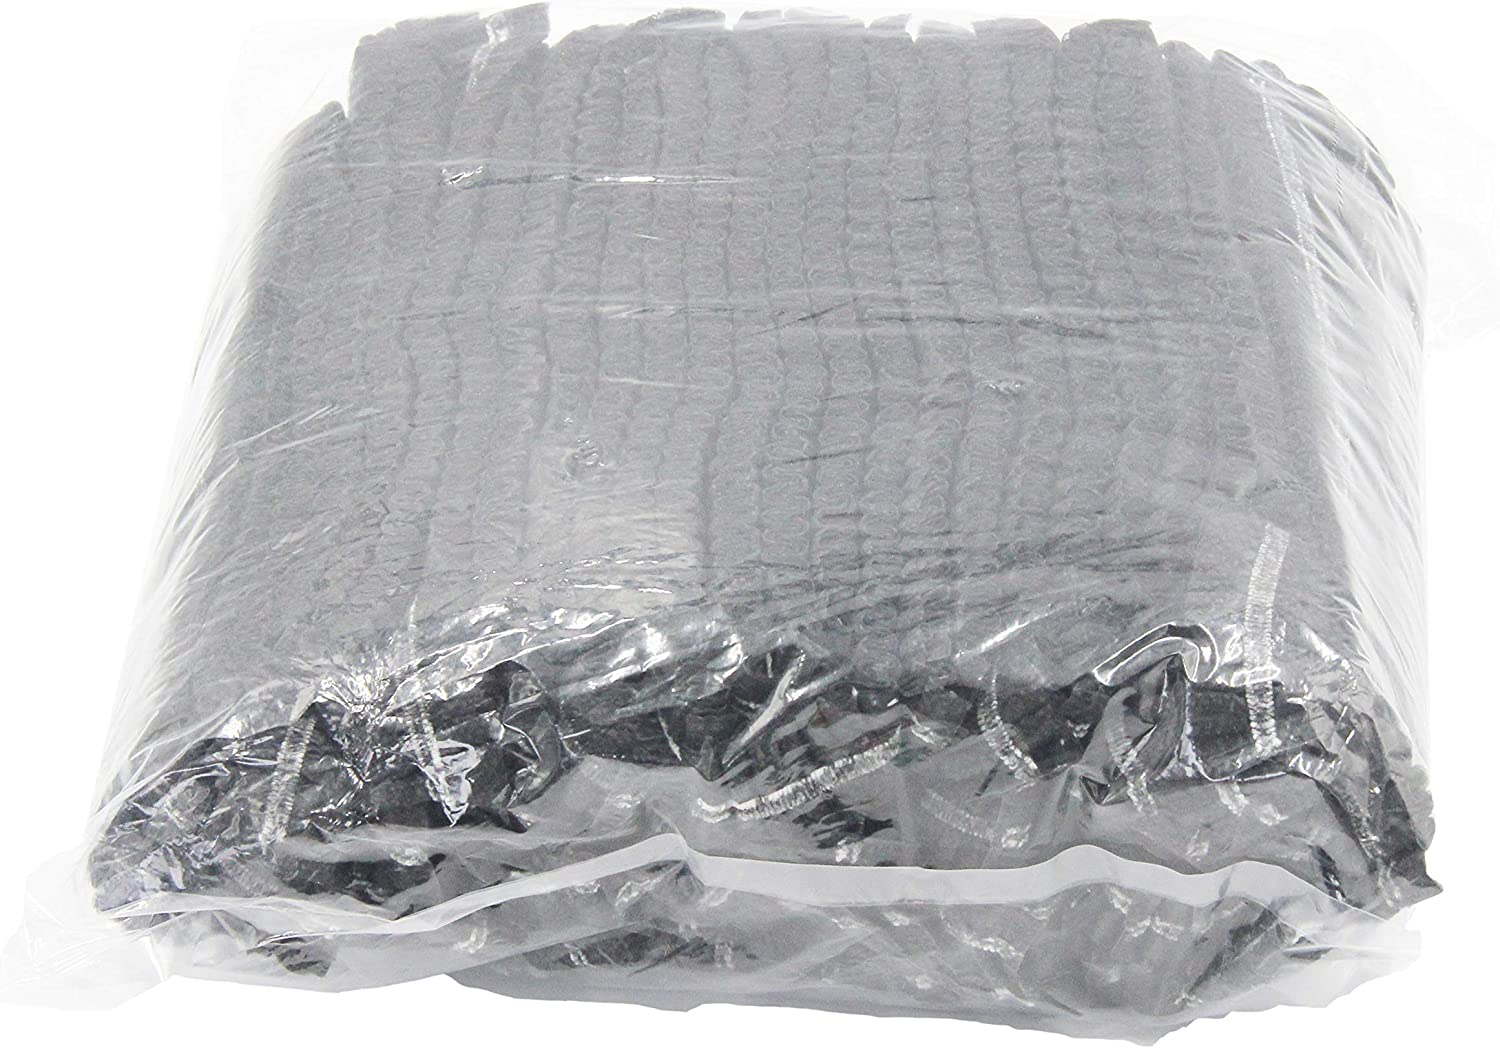 Disposable Cap,Mob Caps,Hair Net Cap,100pcs,Elastic Free Size,for Cosmetics, Beauty, Kitchen, Cooking, Home Industries